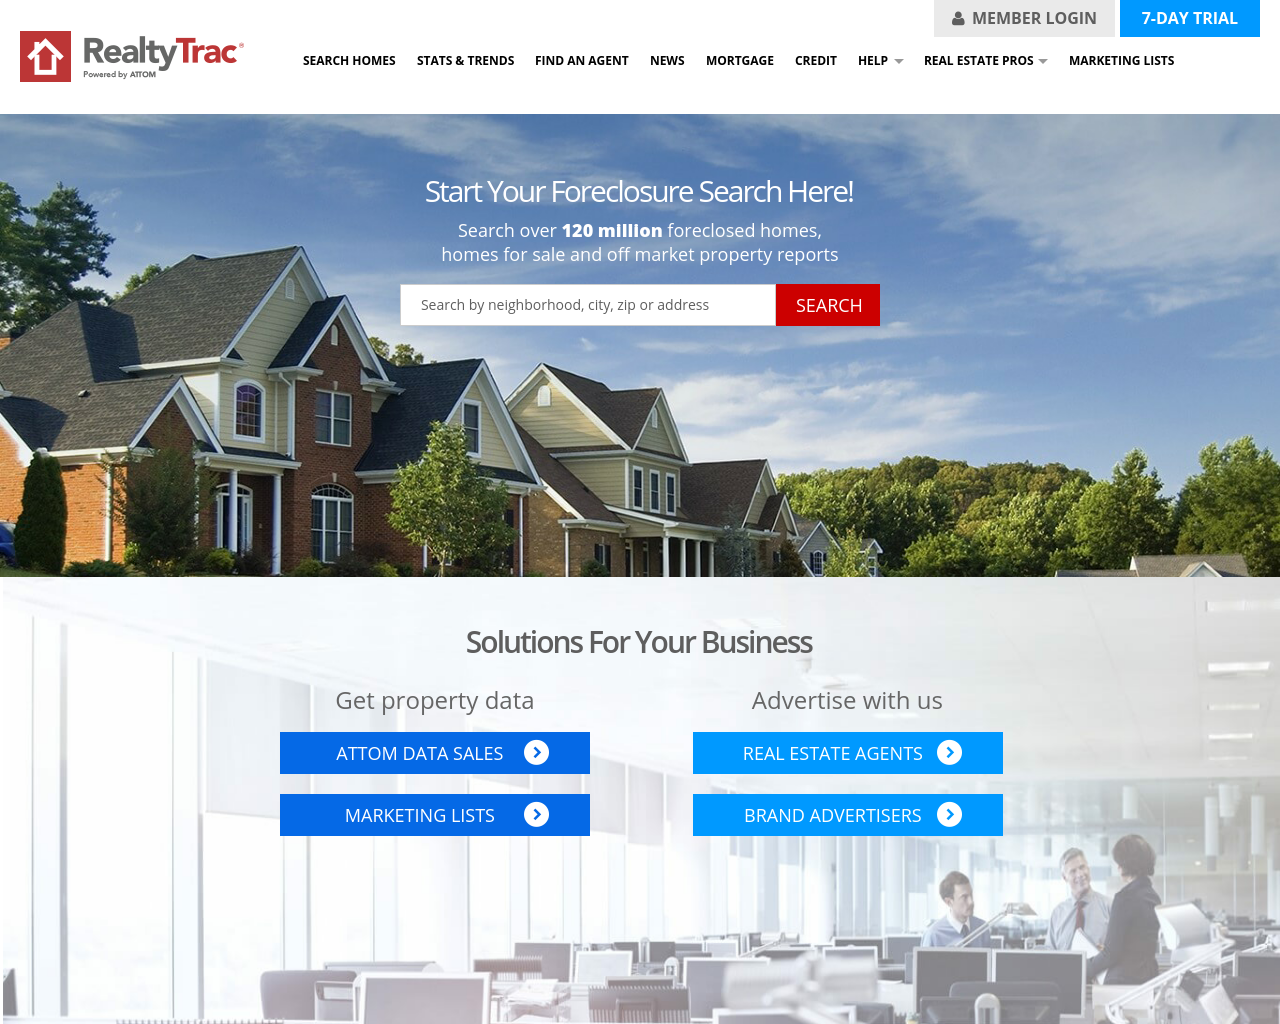 Realty-Trac-Advertising-Reviews-Pricing